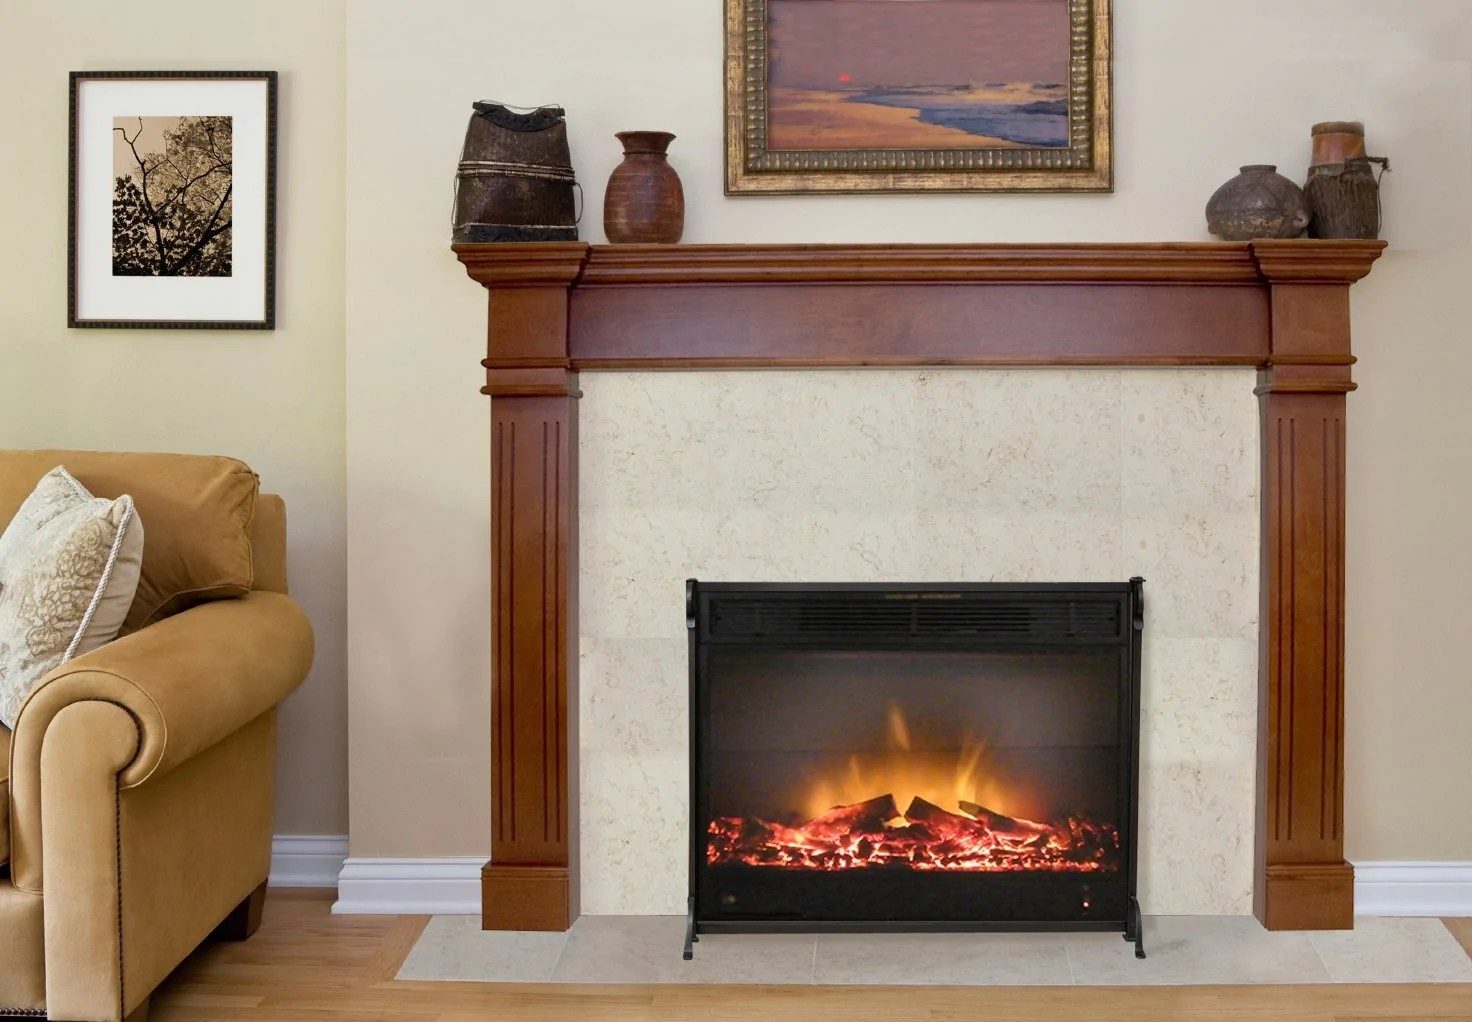 6 Ft Fireplace Mantel Harbour 6 Ft Mahogany Fireplace Mantel Shelf Paramountathome